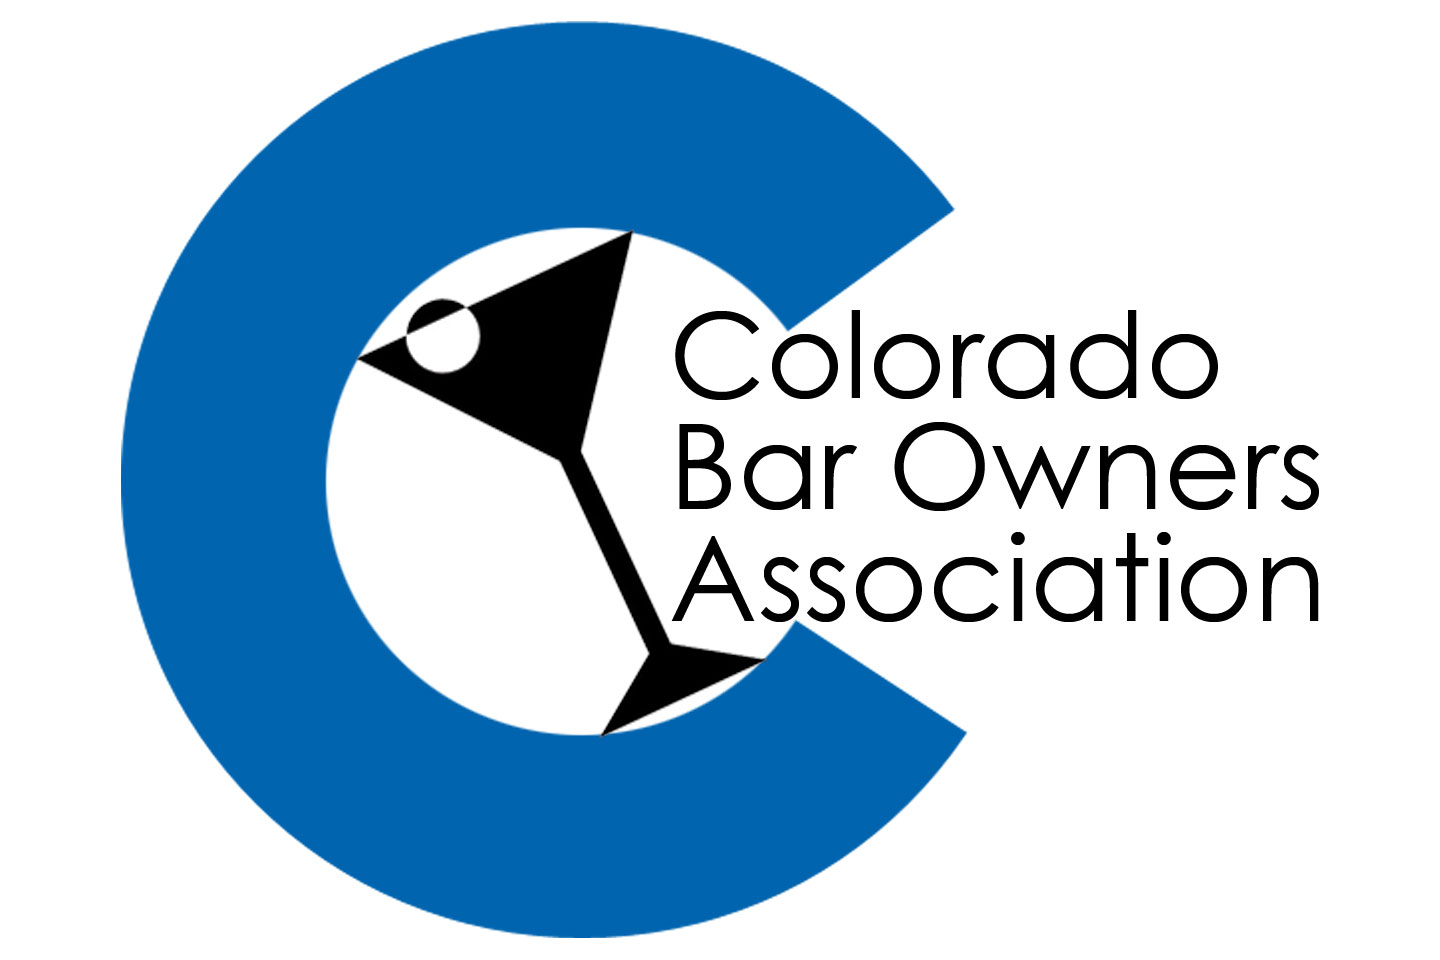 Colorado Bar Owners Association